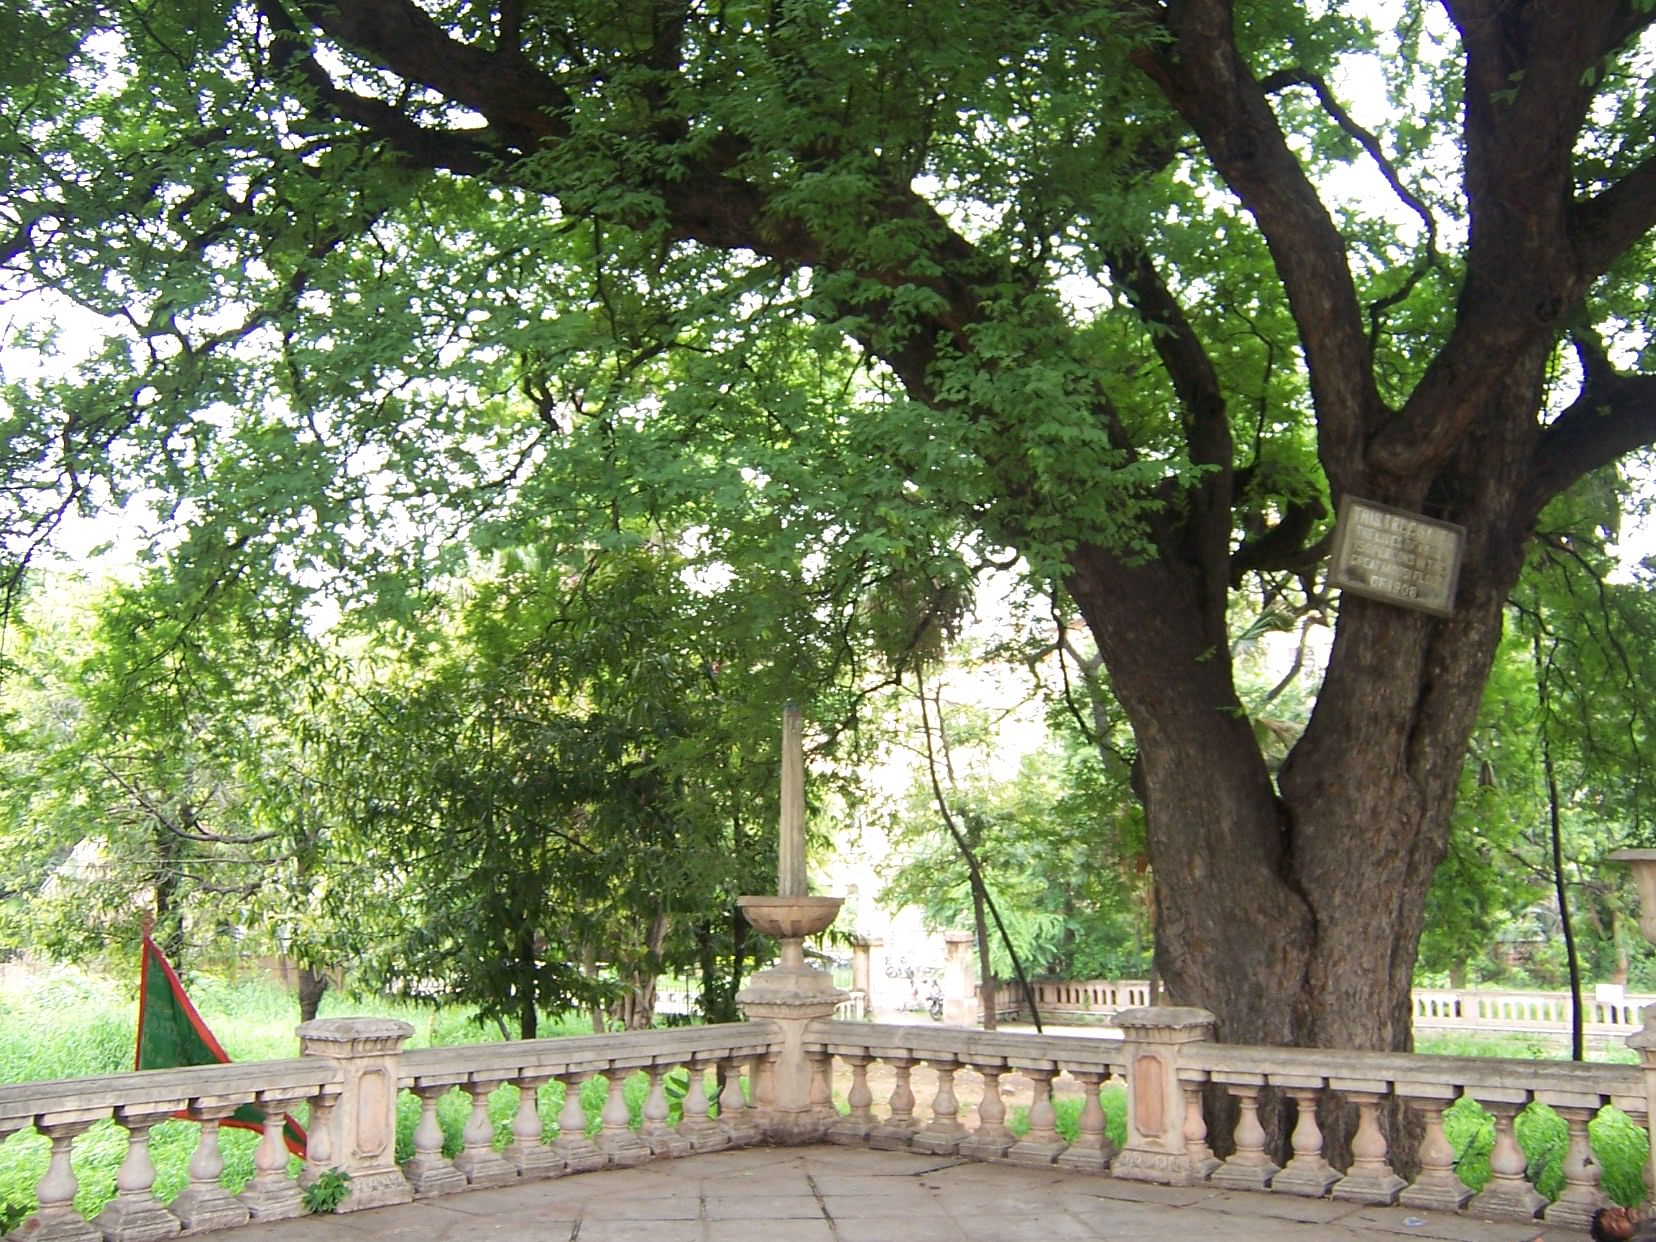 The tamarind tee in Osmania Park, which saved lives during the 1908 floods